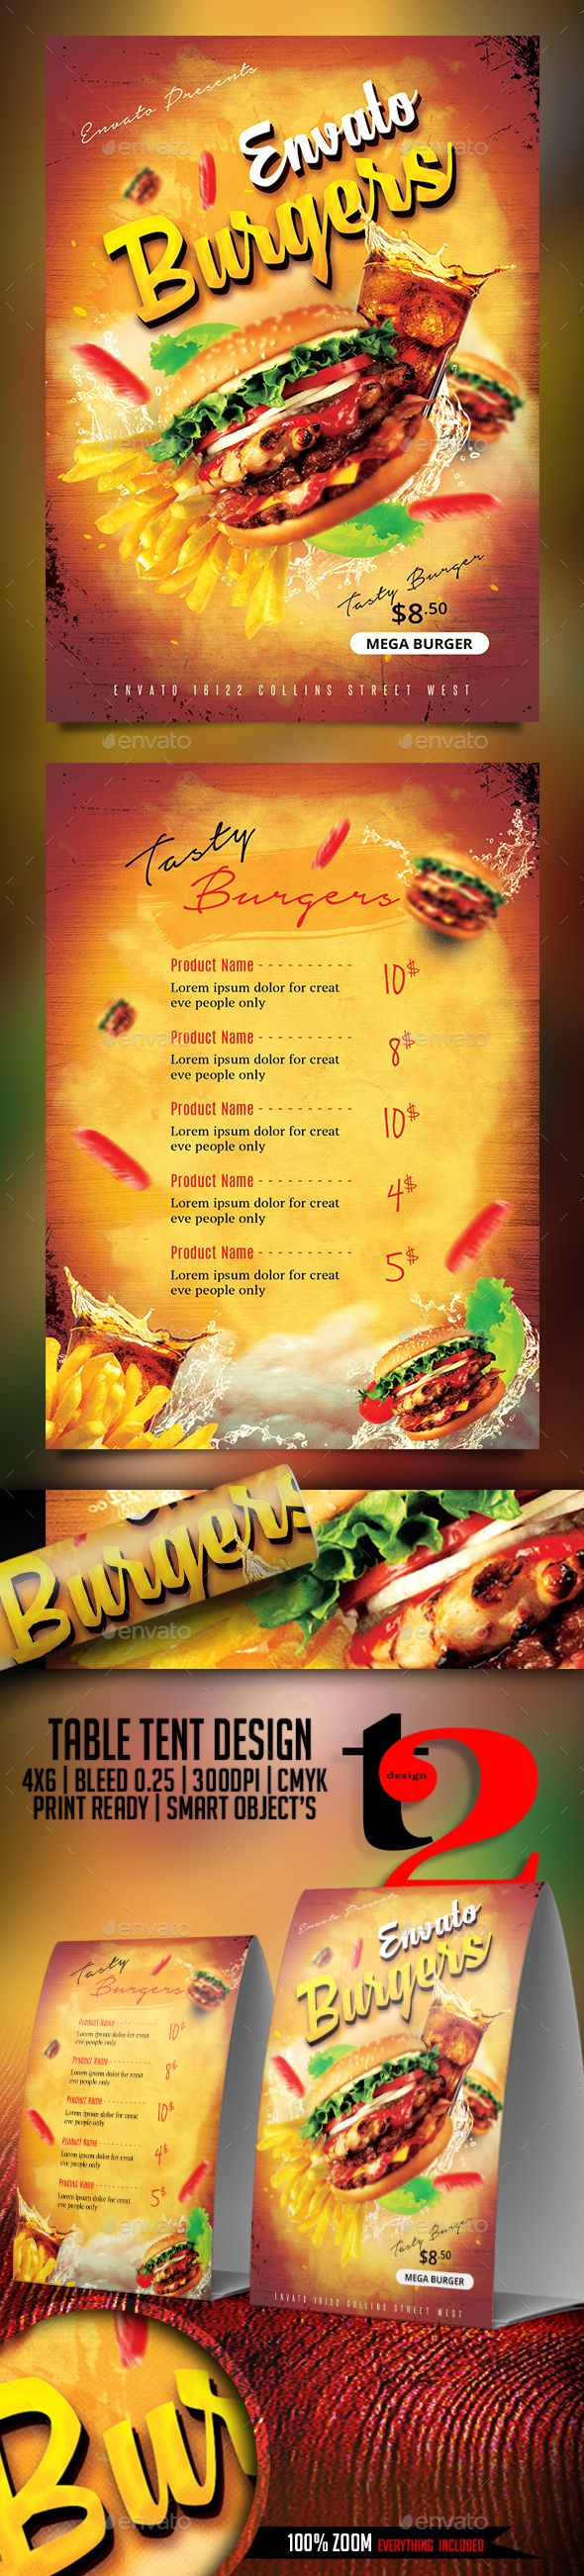 pin by alison ana on burger flyer pinterest flyer template